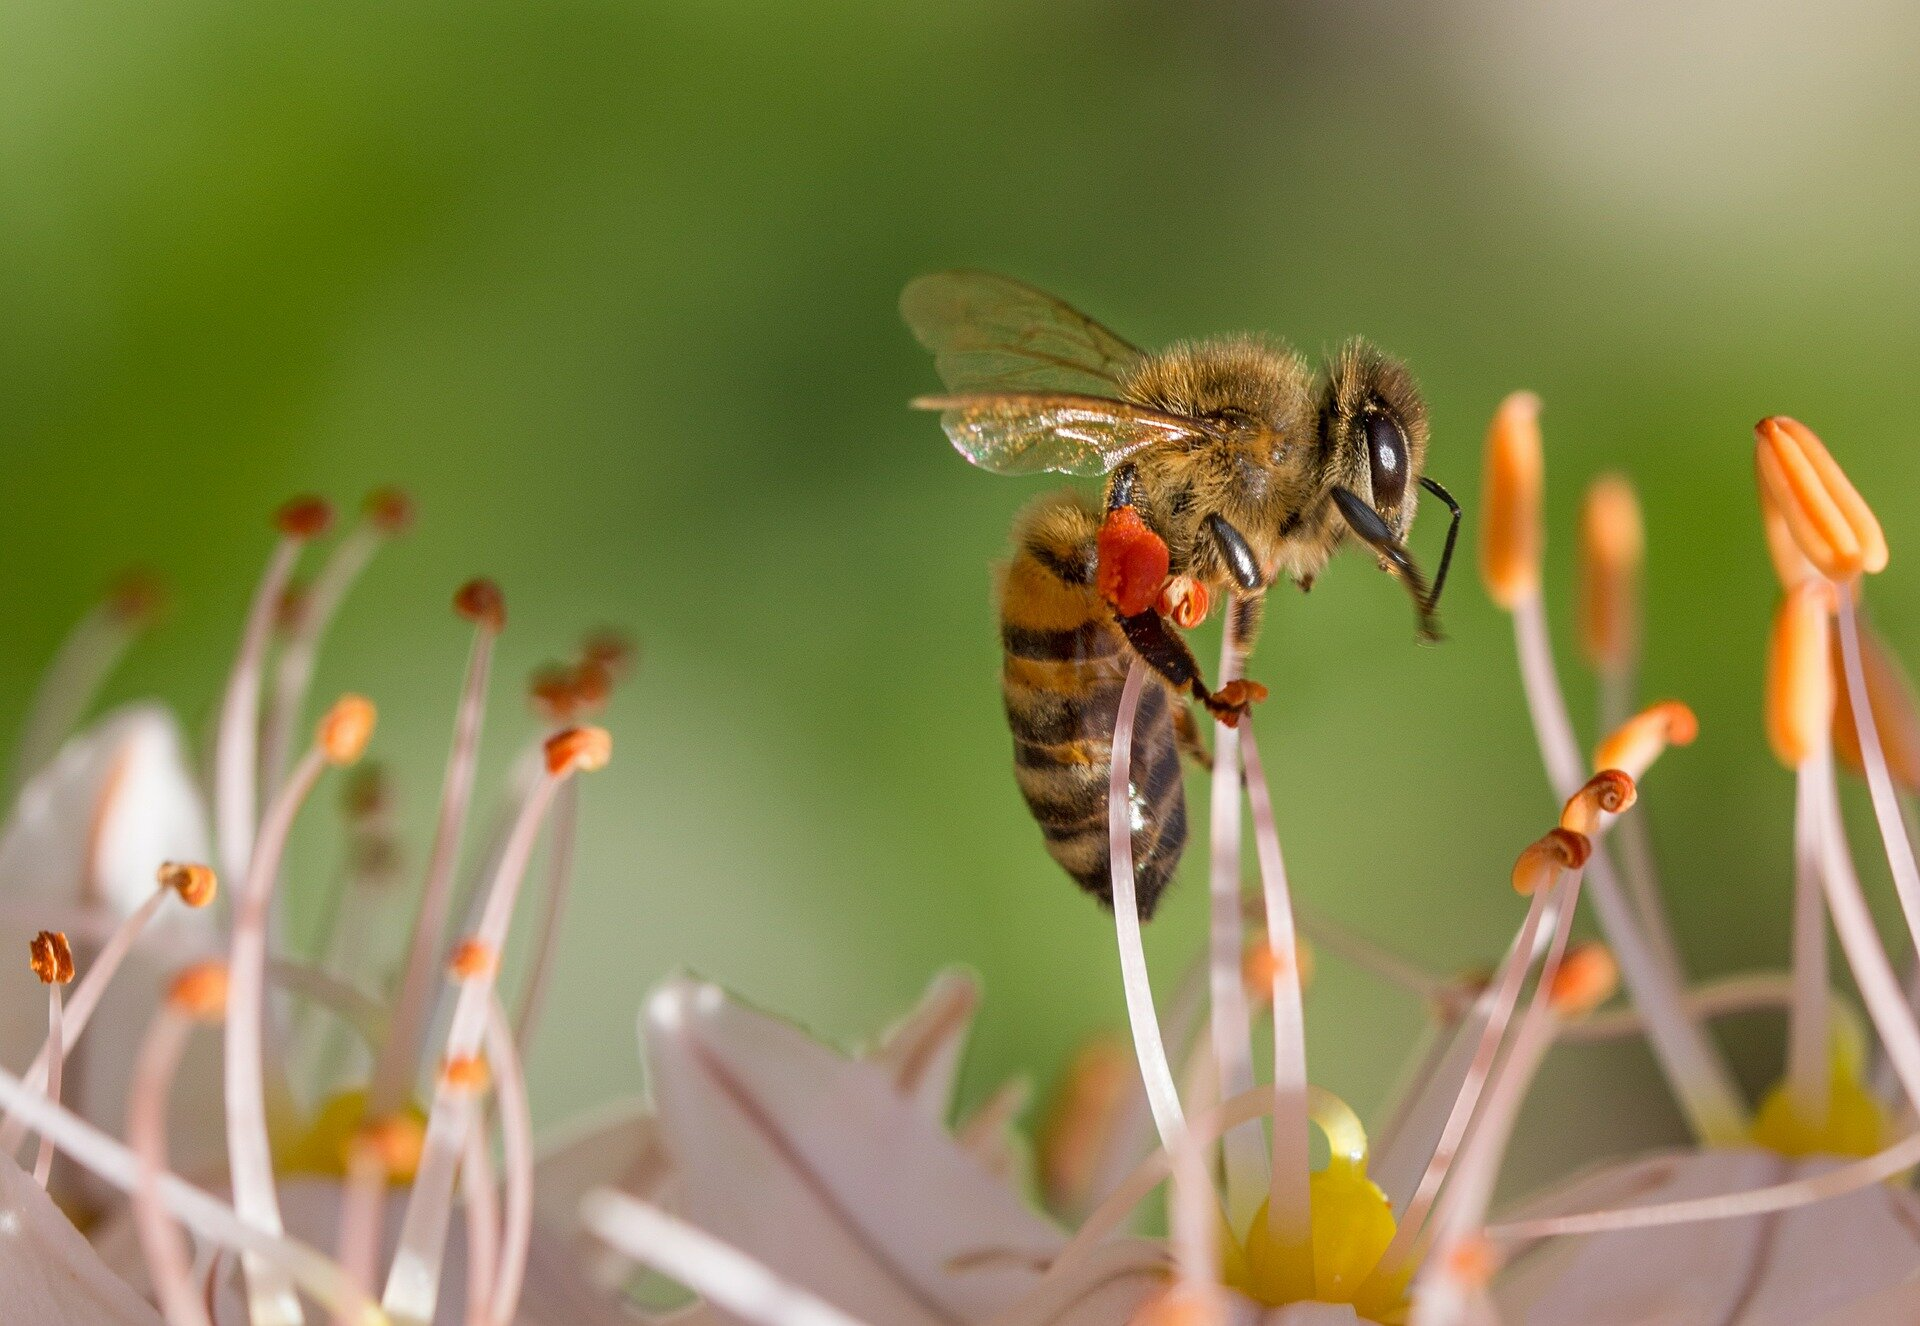 Researchers developing natural pesticide alternative to target pests without harming honeybees